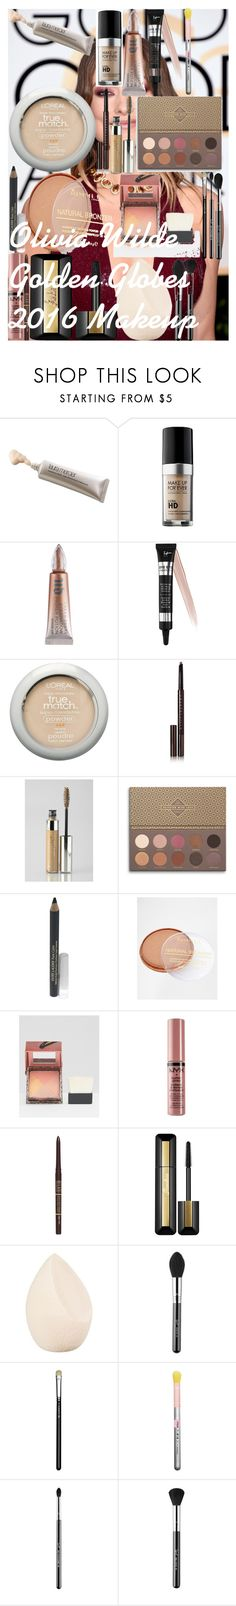 Olivia Wilde Golden Globes 2016 Makeup by oroartye-1 on Polyvore featuring beauty, Laura Mercier, MAKE UP FOR EVER, It Cosmetics, Chantecaille, Guerlain, MAC Cosmetics, Sigma, Benefit and Urban Decay